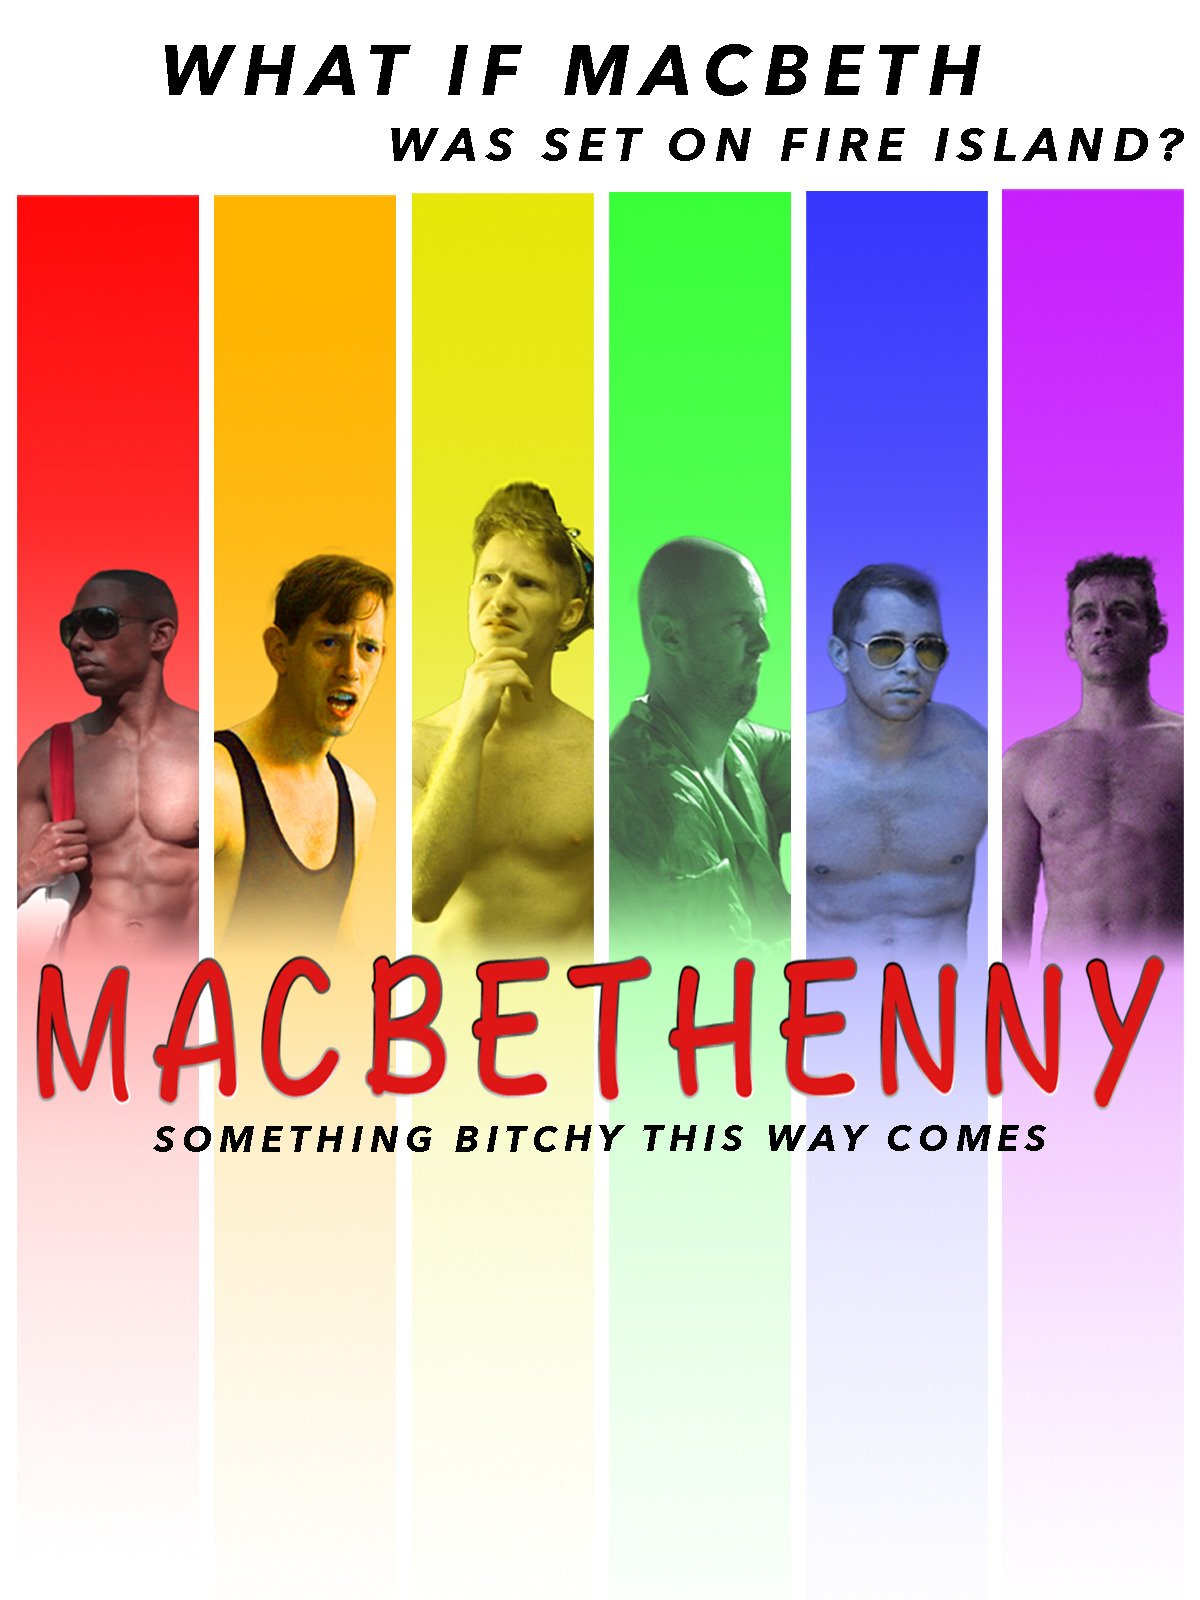 MacBethenny